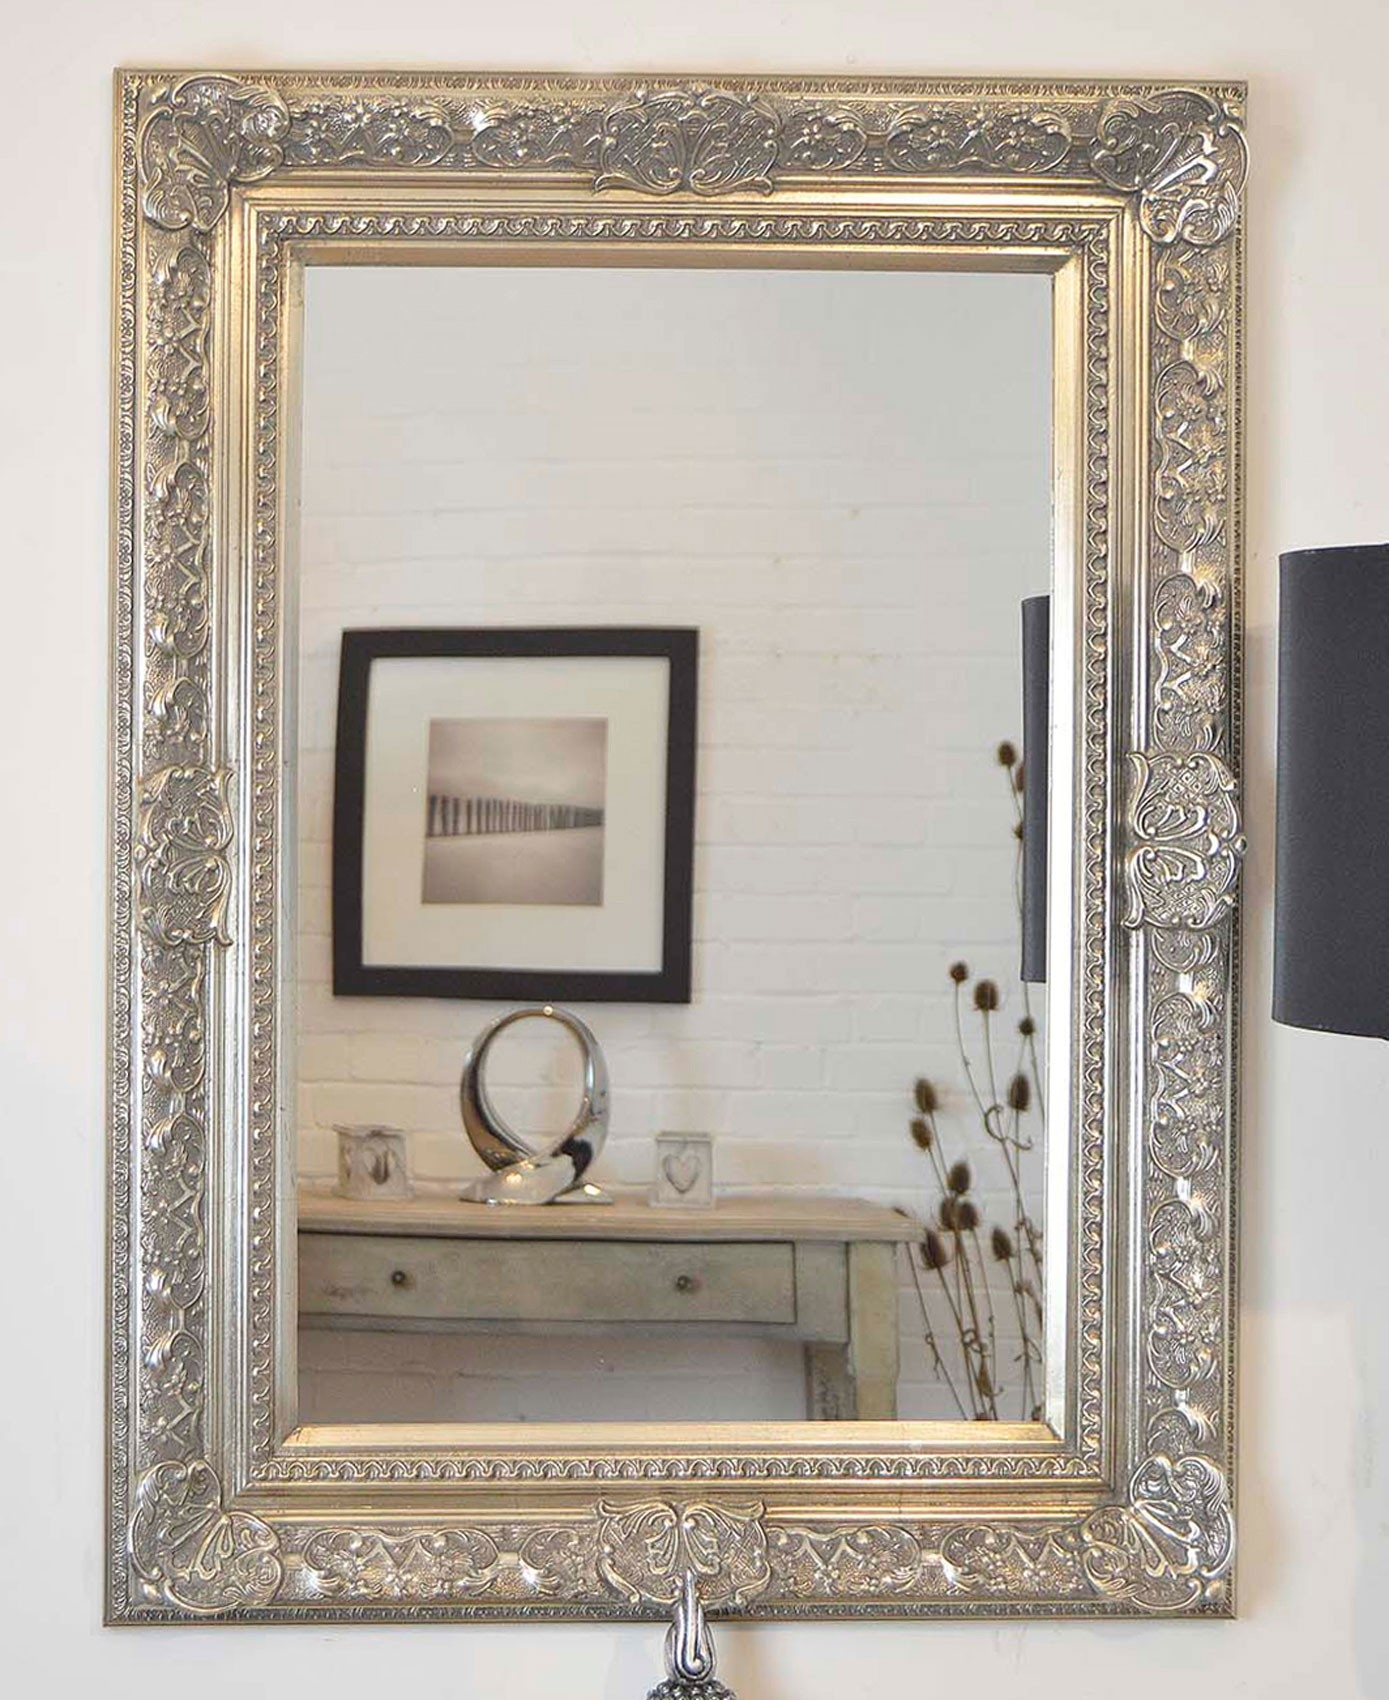 Large Silver Wall Mirror Wall Shelves Throughout Large Ornate Silver Mirror (Image 10 of 15)